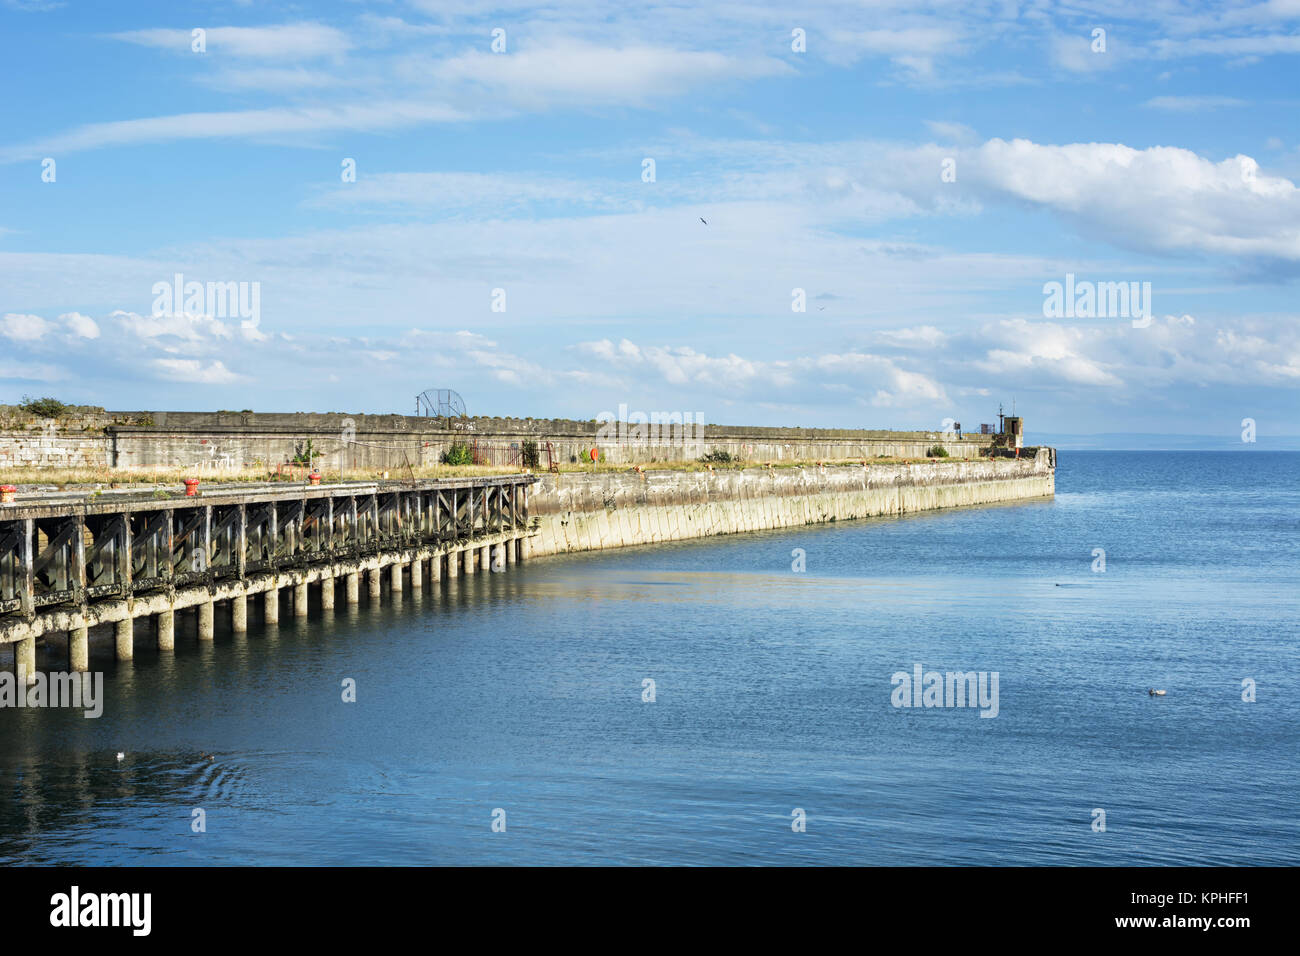 Old pier in the town of Kirkcaldy in Scotland - Stock Image